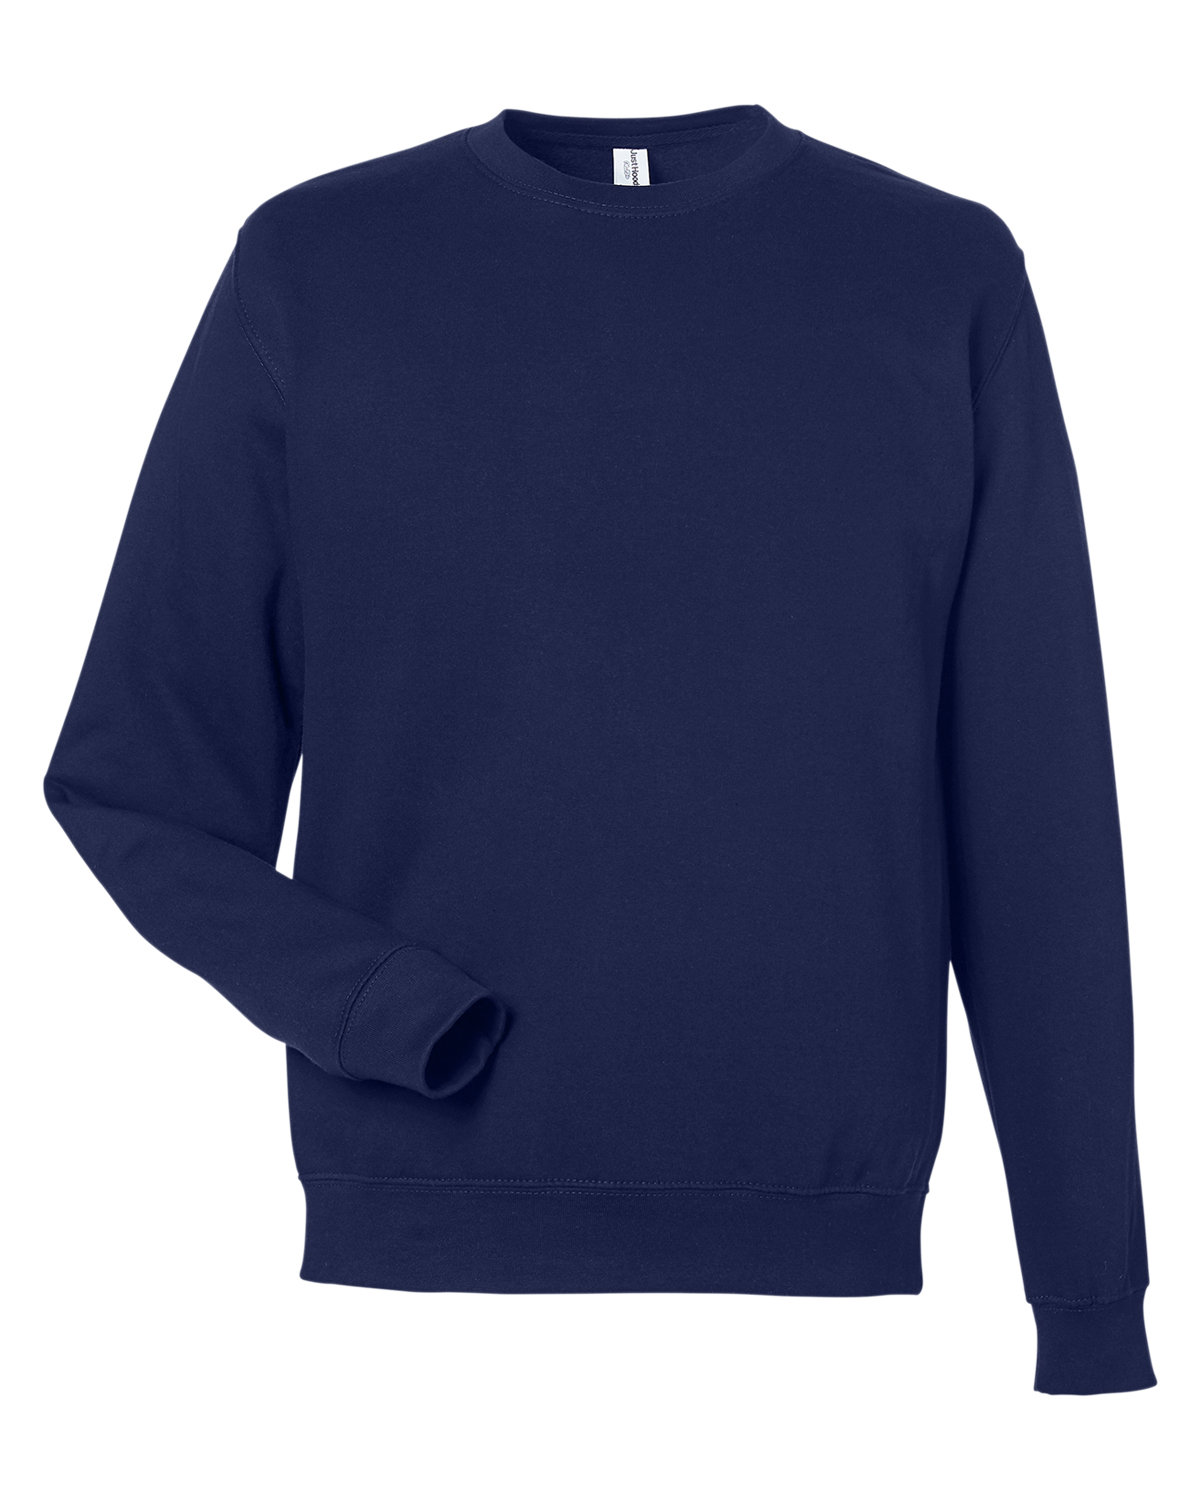 Just Hoods By AWDis Adult 80/20 Midweight College Crewneck Sweatshirt OXFORD NAVY